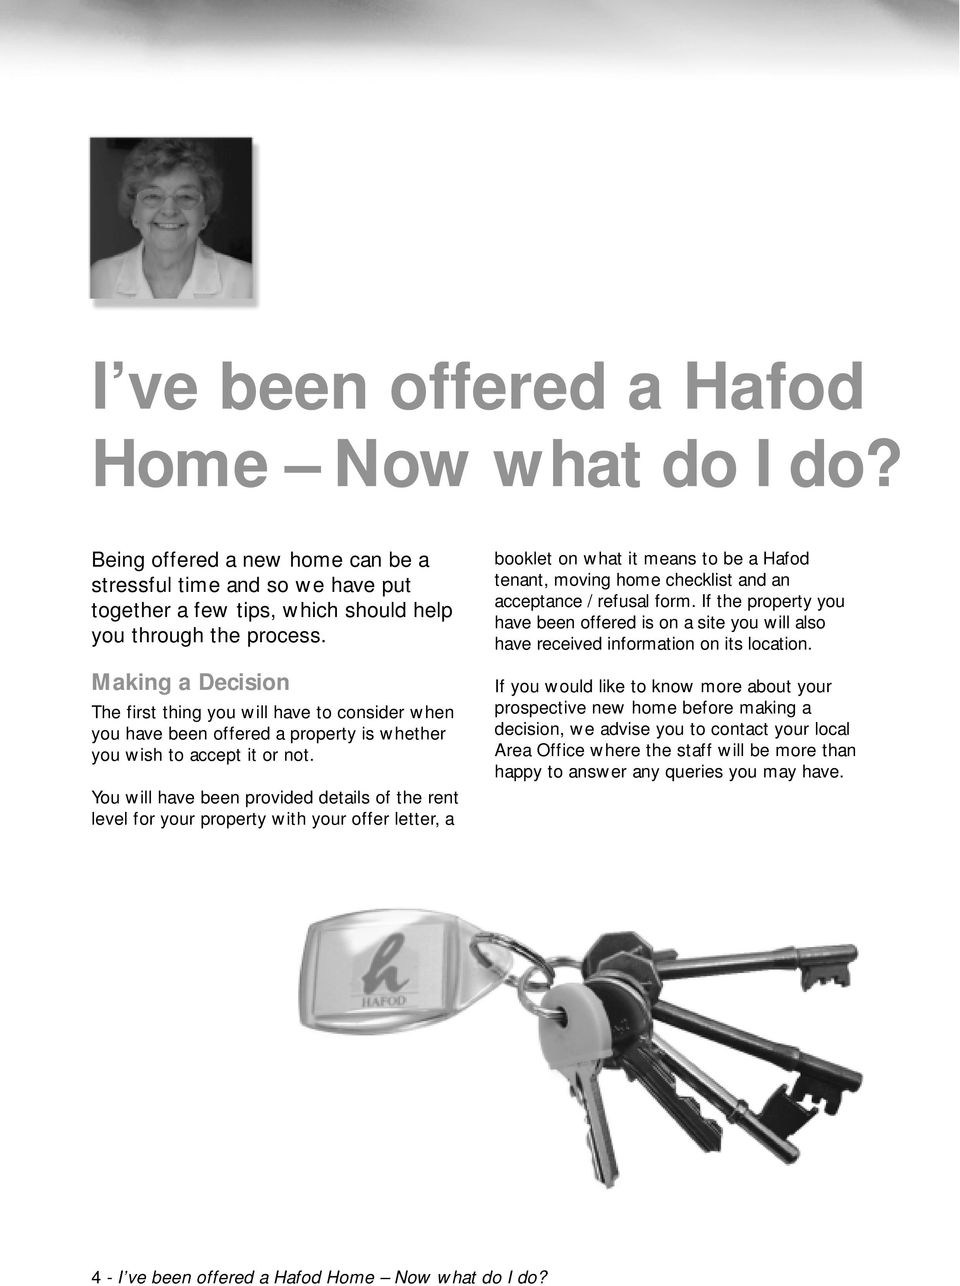 You will have been provided details of the rent level for your property with your offer letter, a booklet on what it means to be a Hafod tenant, moving home checklist and an acceptance / refusal form.